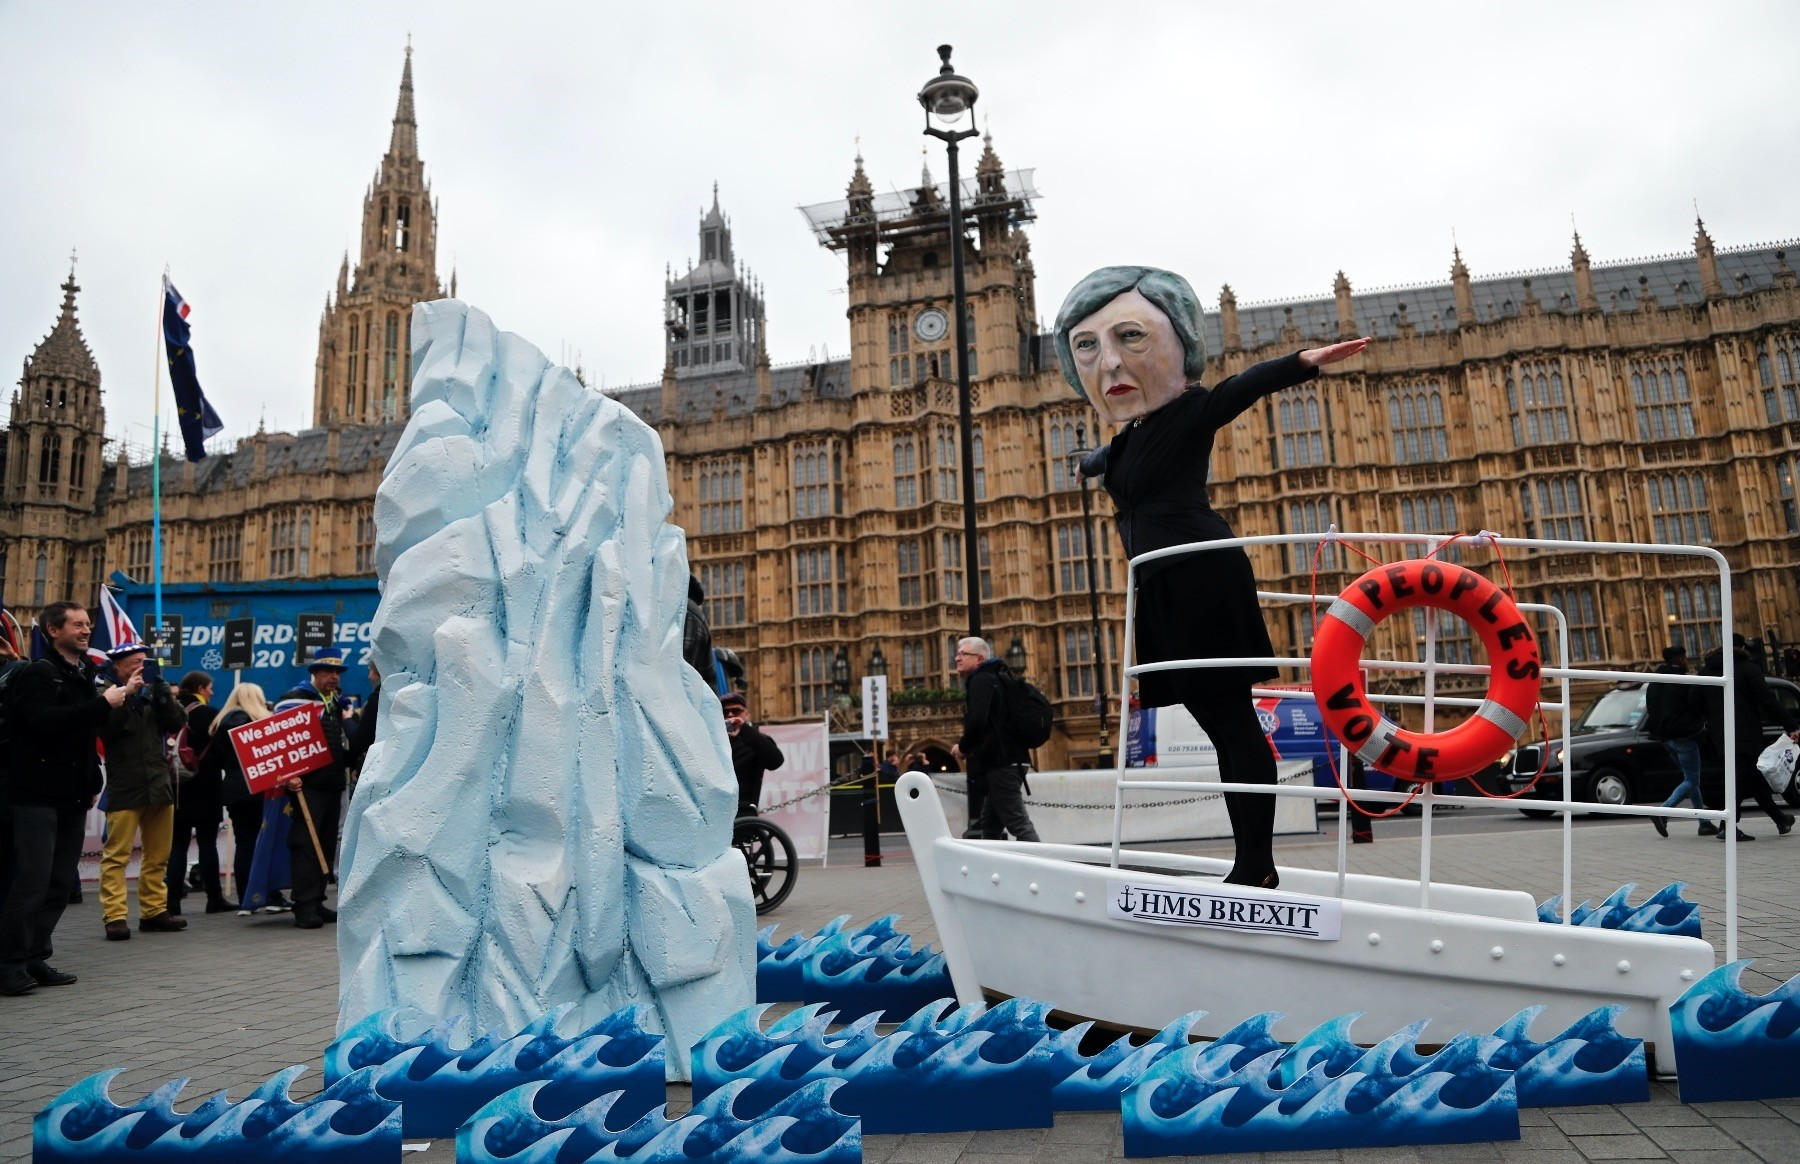 An activist wears a mask of Britainu2019s Prime Minister Theresa May during an anti-Brexit demonstration, in front of the Houses of Parliament, London, Jan. 15.